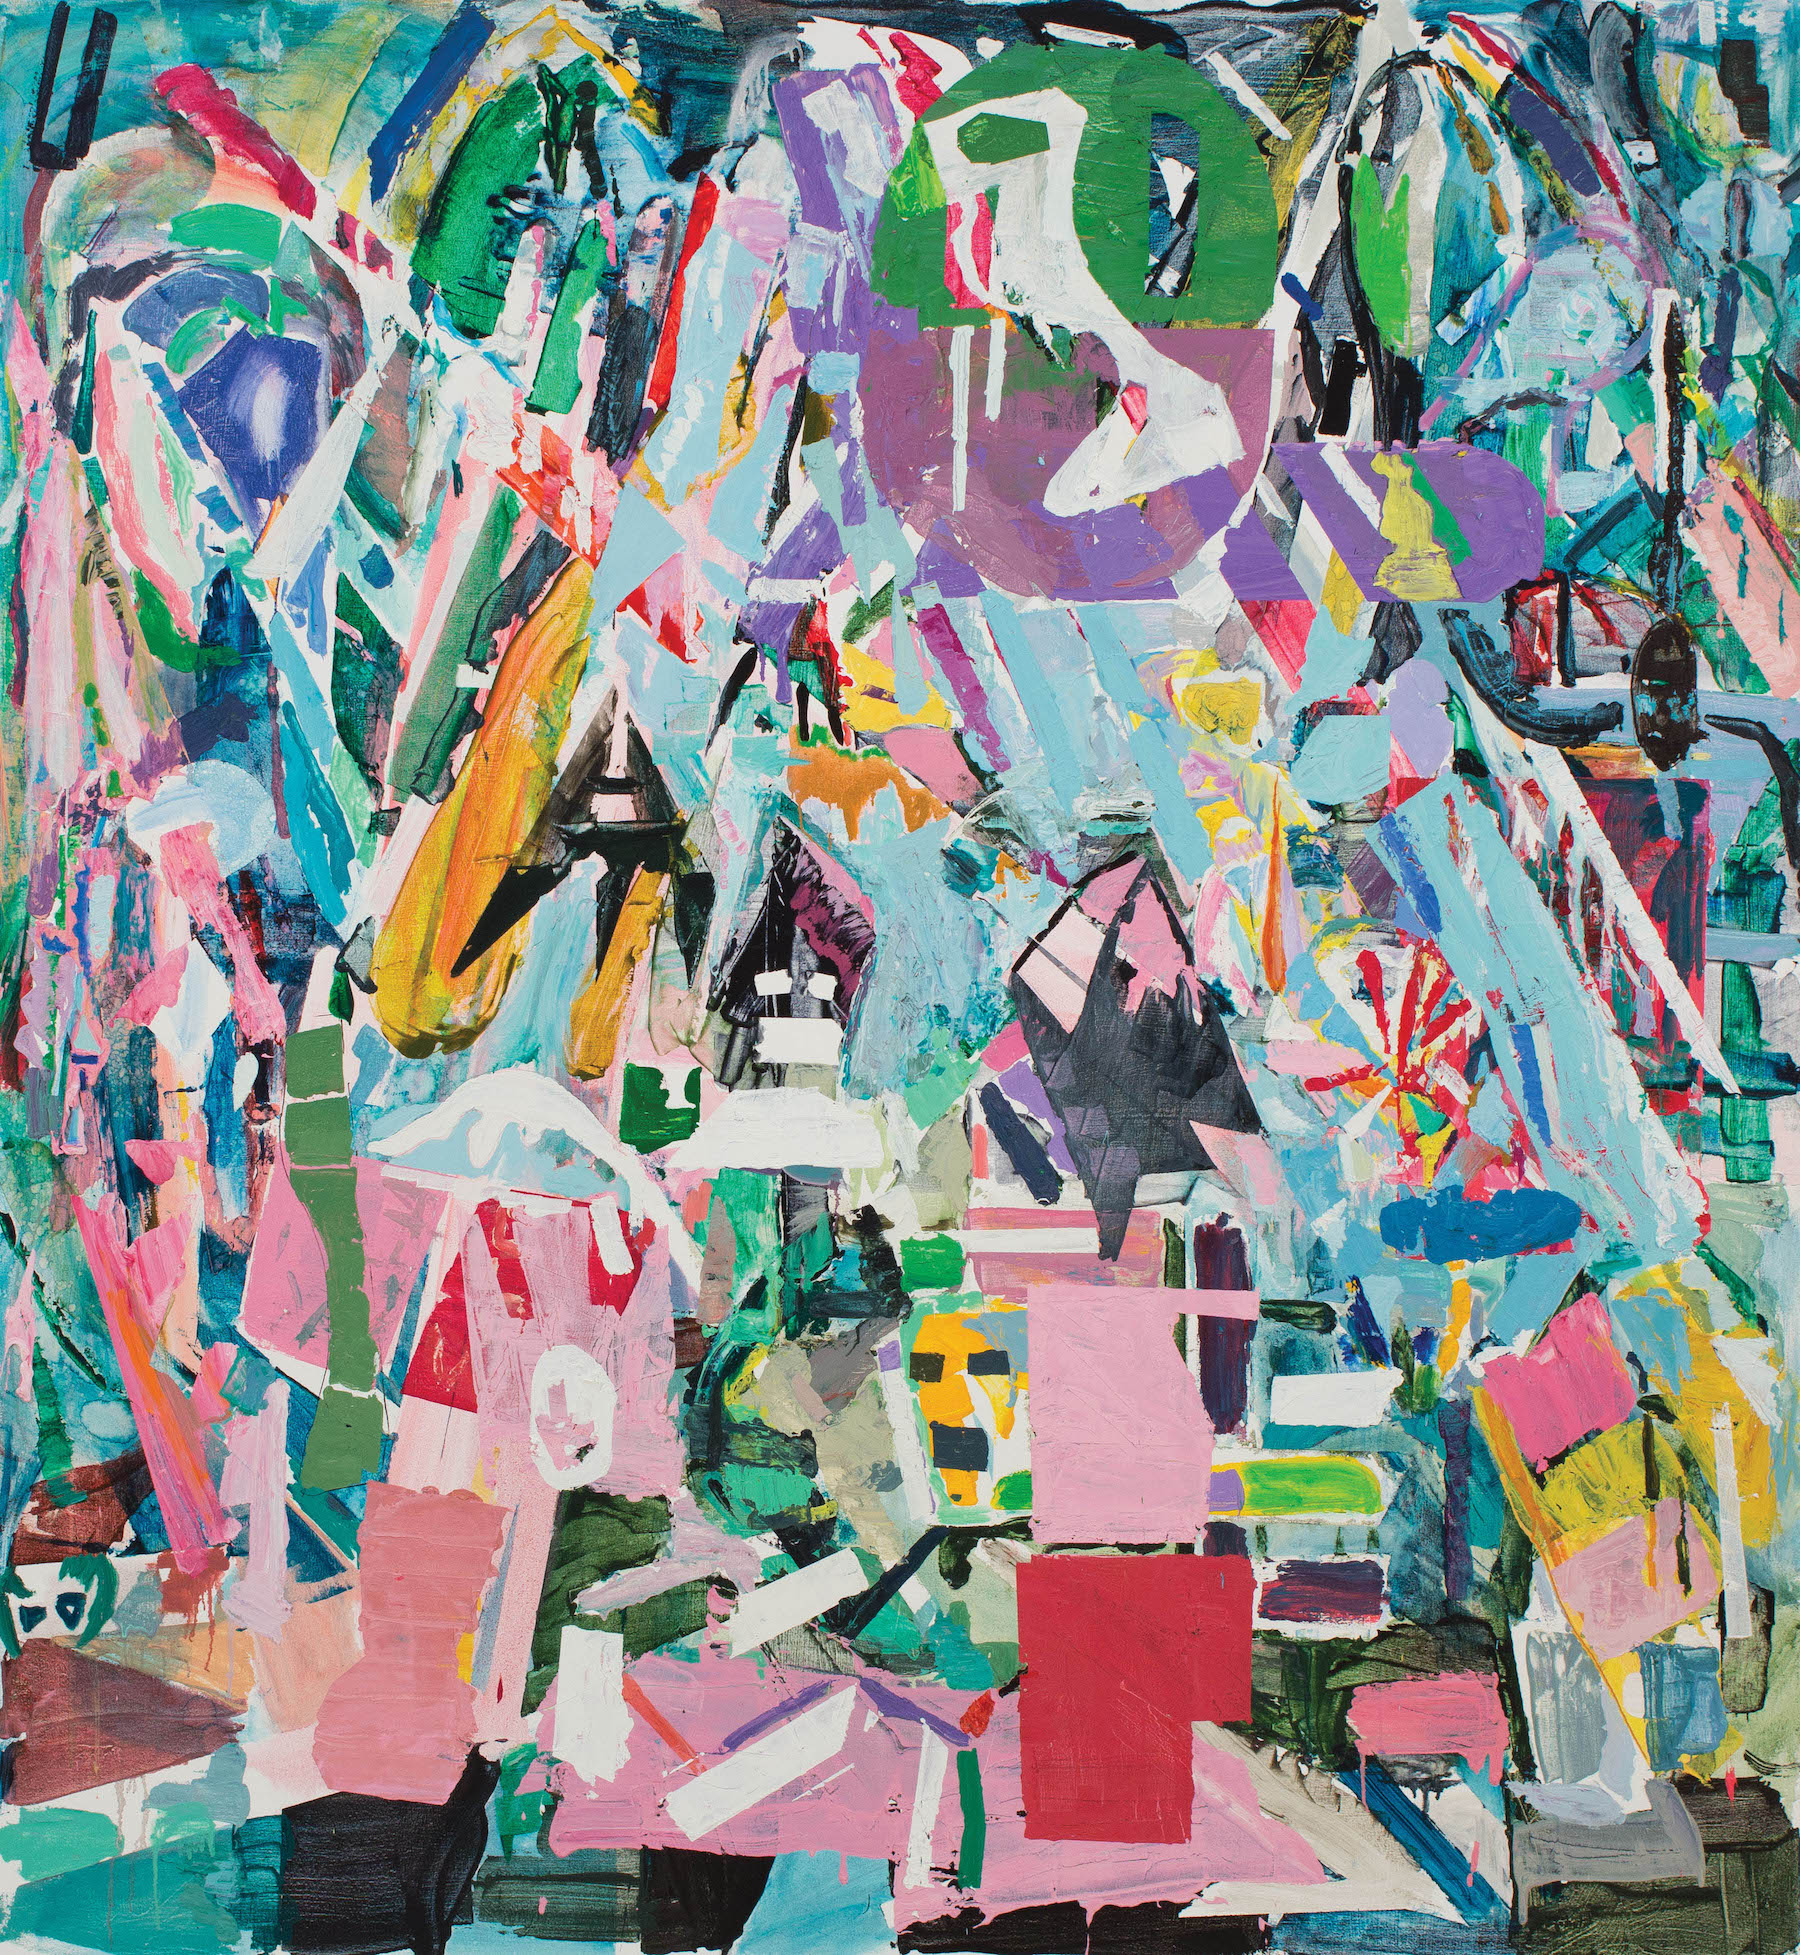 Thomas Berding, Surplus Mound, 2016, oil, acrylic  and flashe on canvas, 76 x 70 inches (courtesy of the artist and The Painting Center)